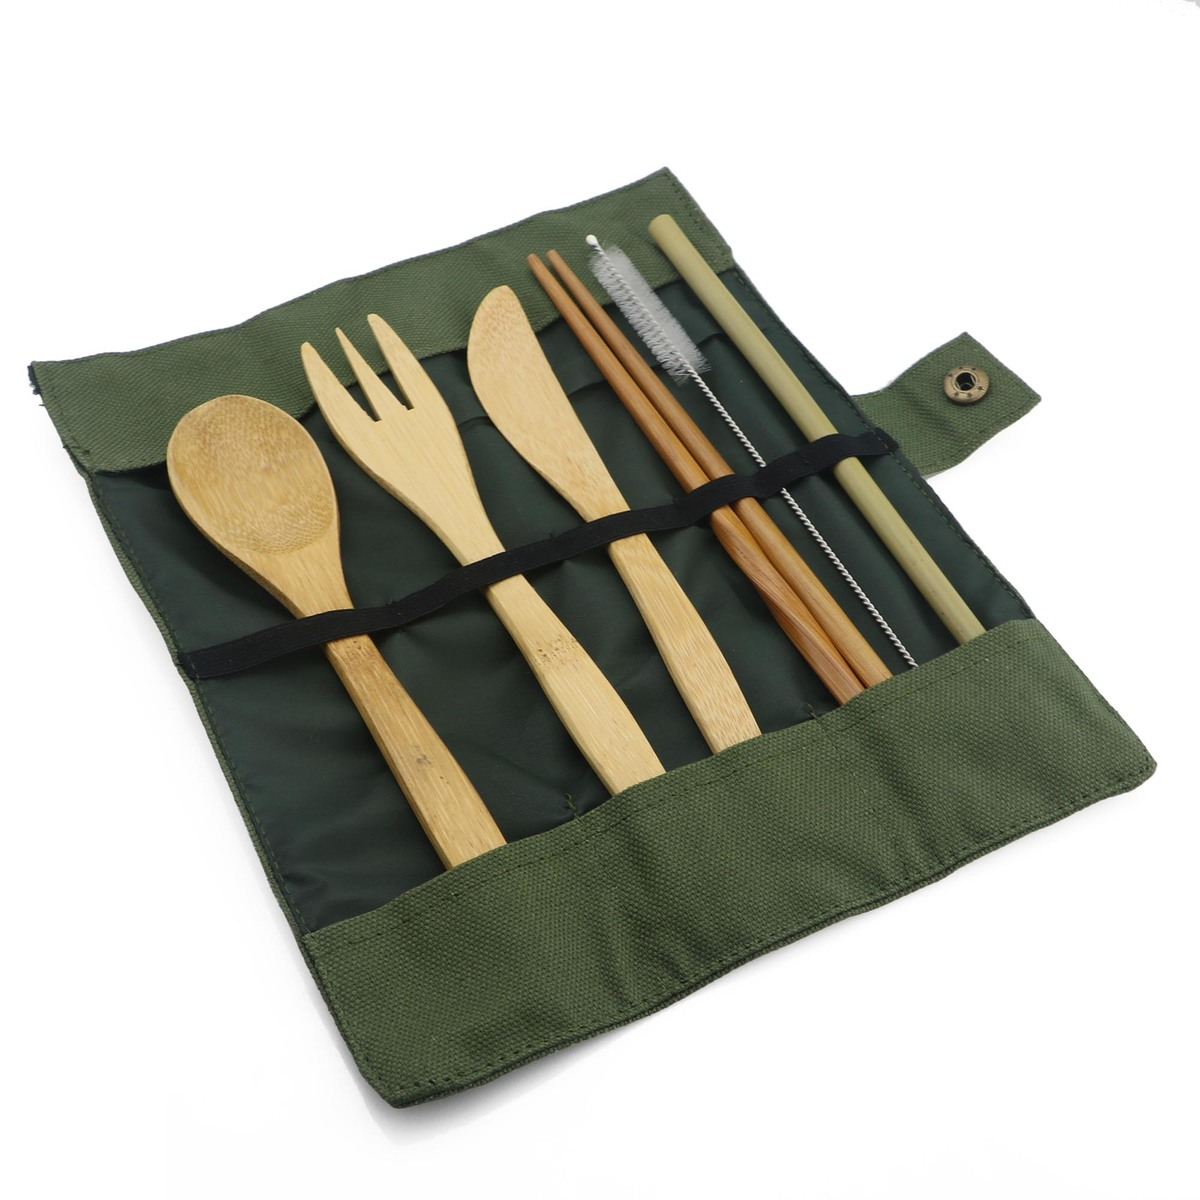 7-Piece Japanese Wooden Cutlery Set Bamboo Straw Dinnerware Set With Cloth Bag Utensil Soup Kitchen Cooking Tools Dropshipping C18112701